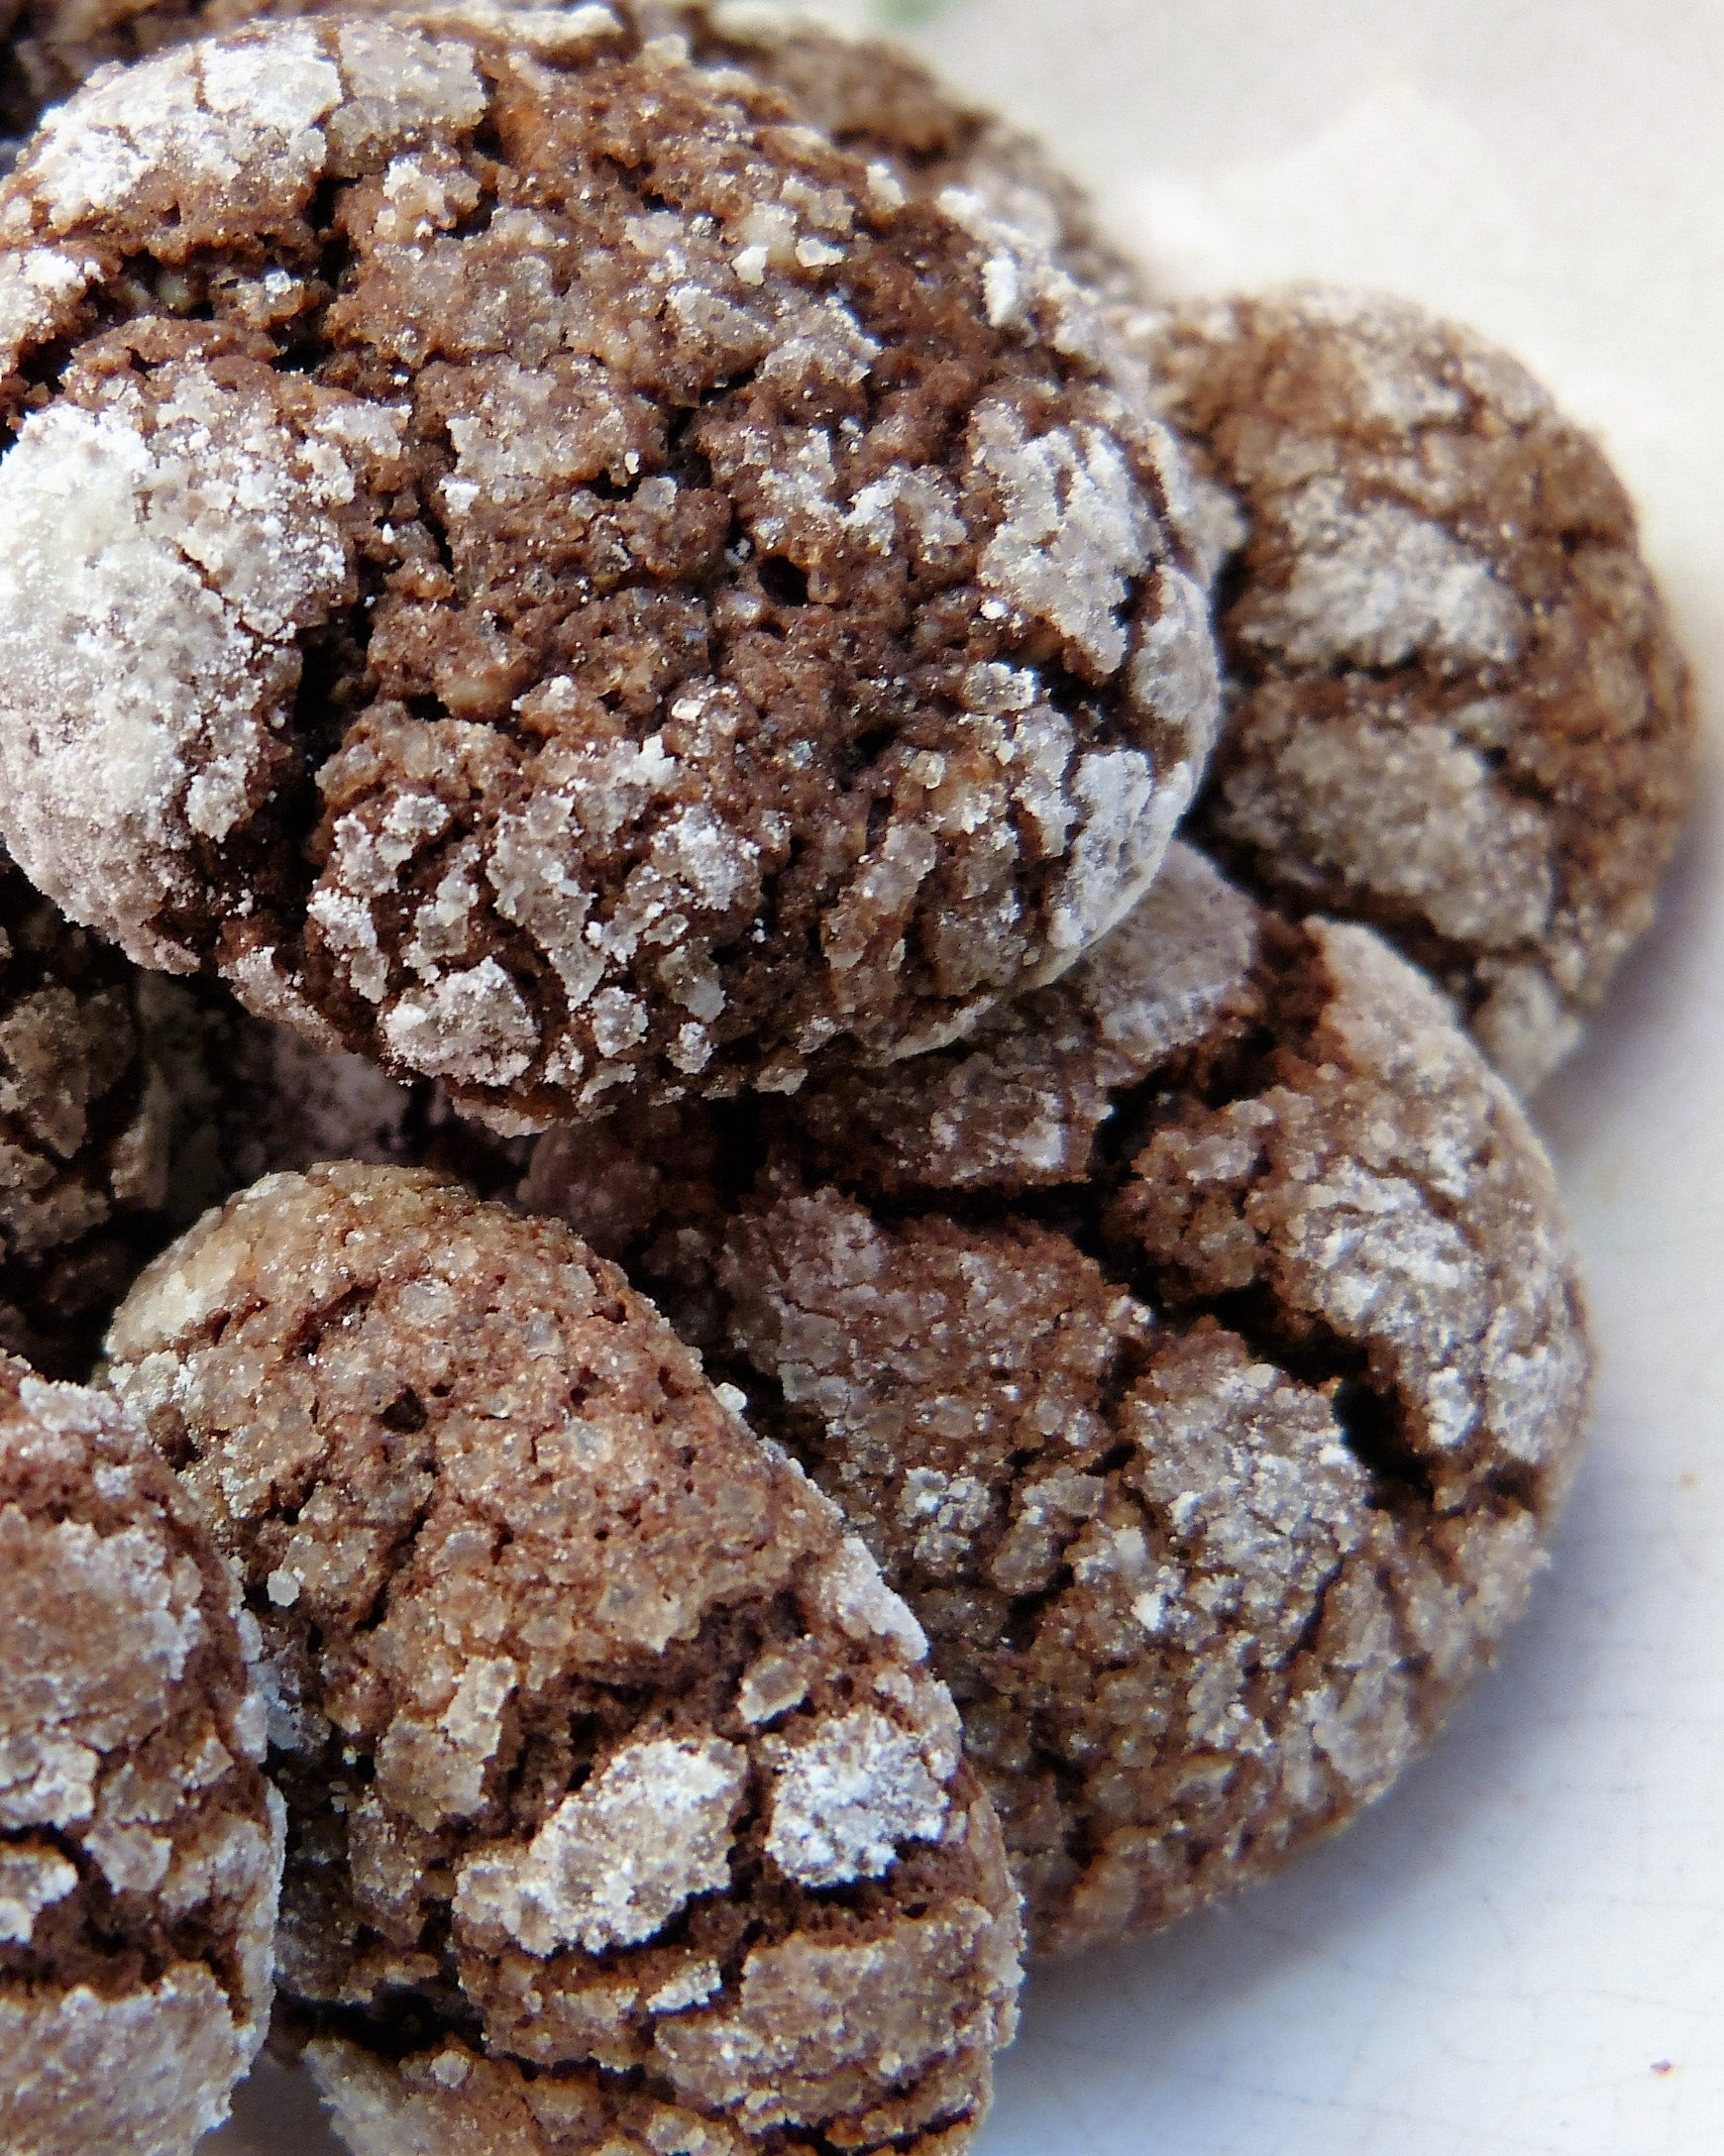 Chewy cookie crumbs